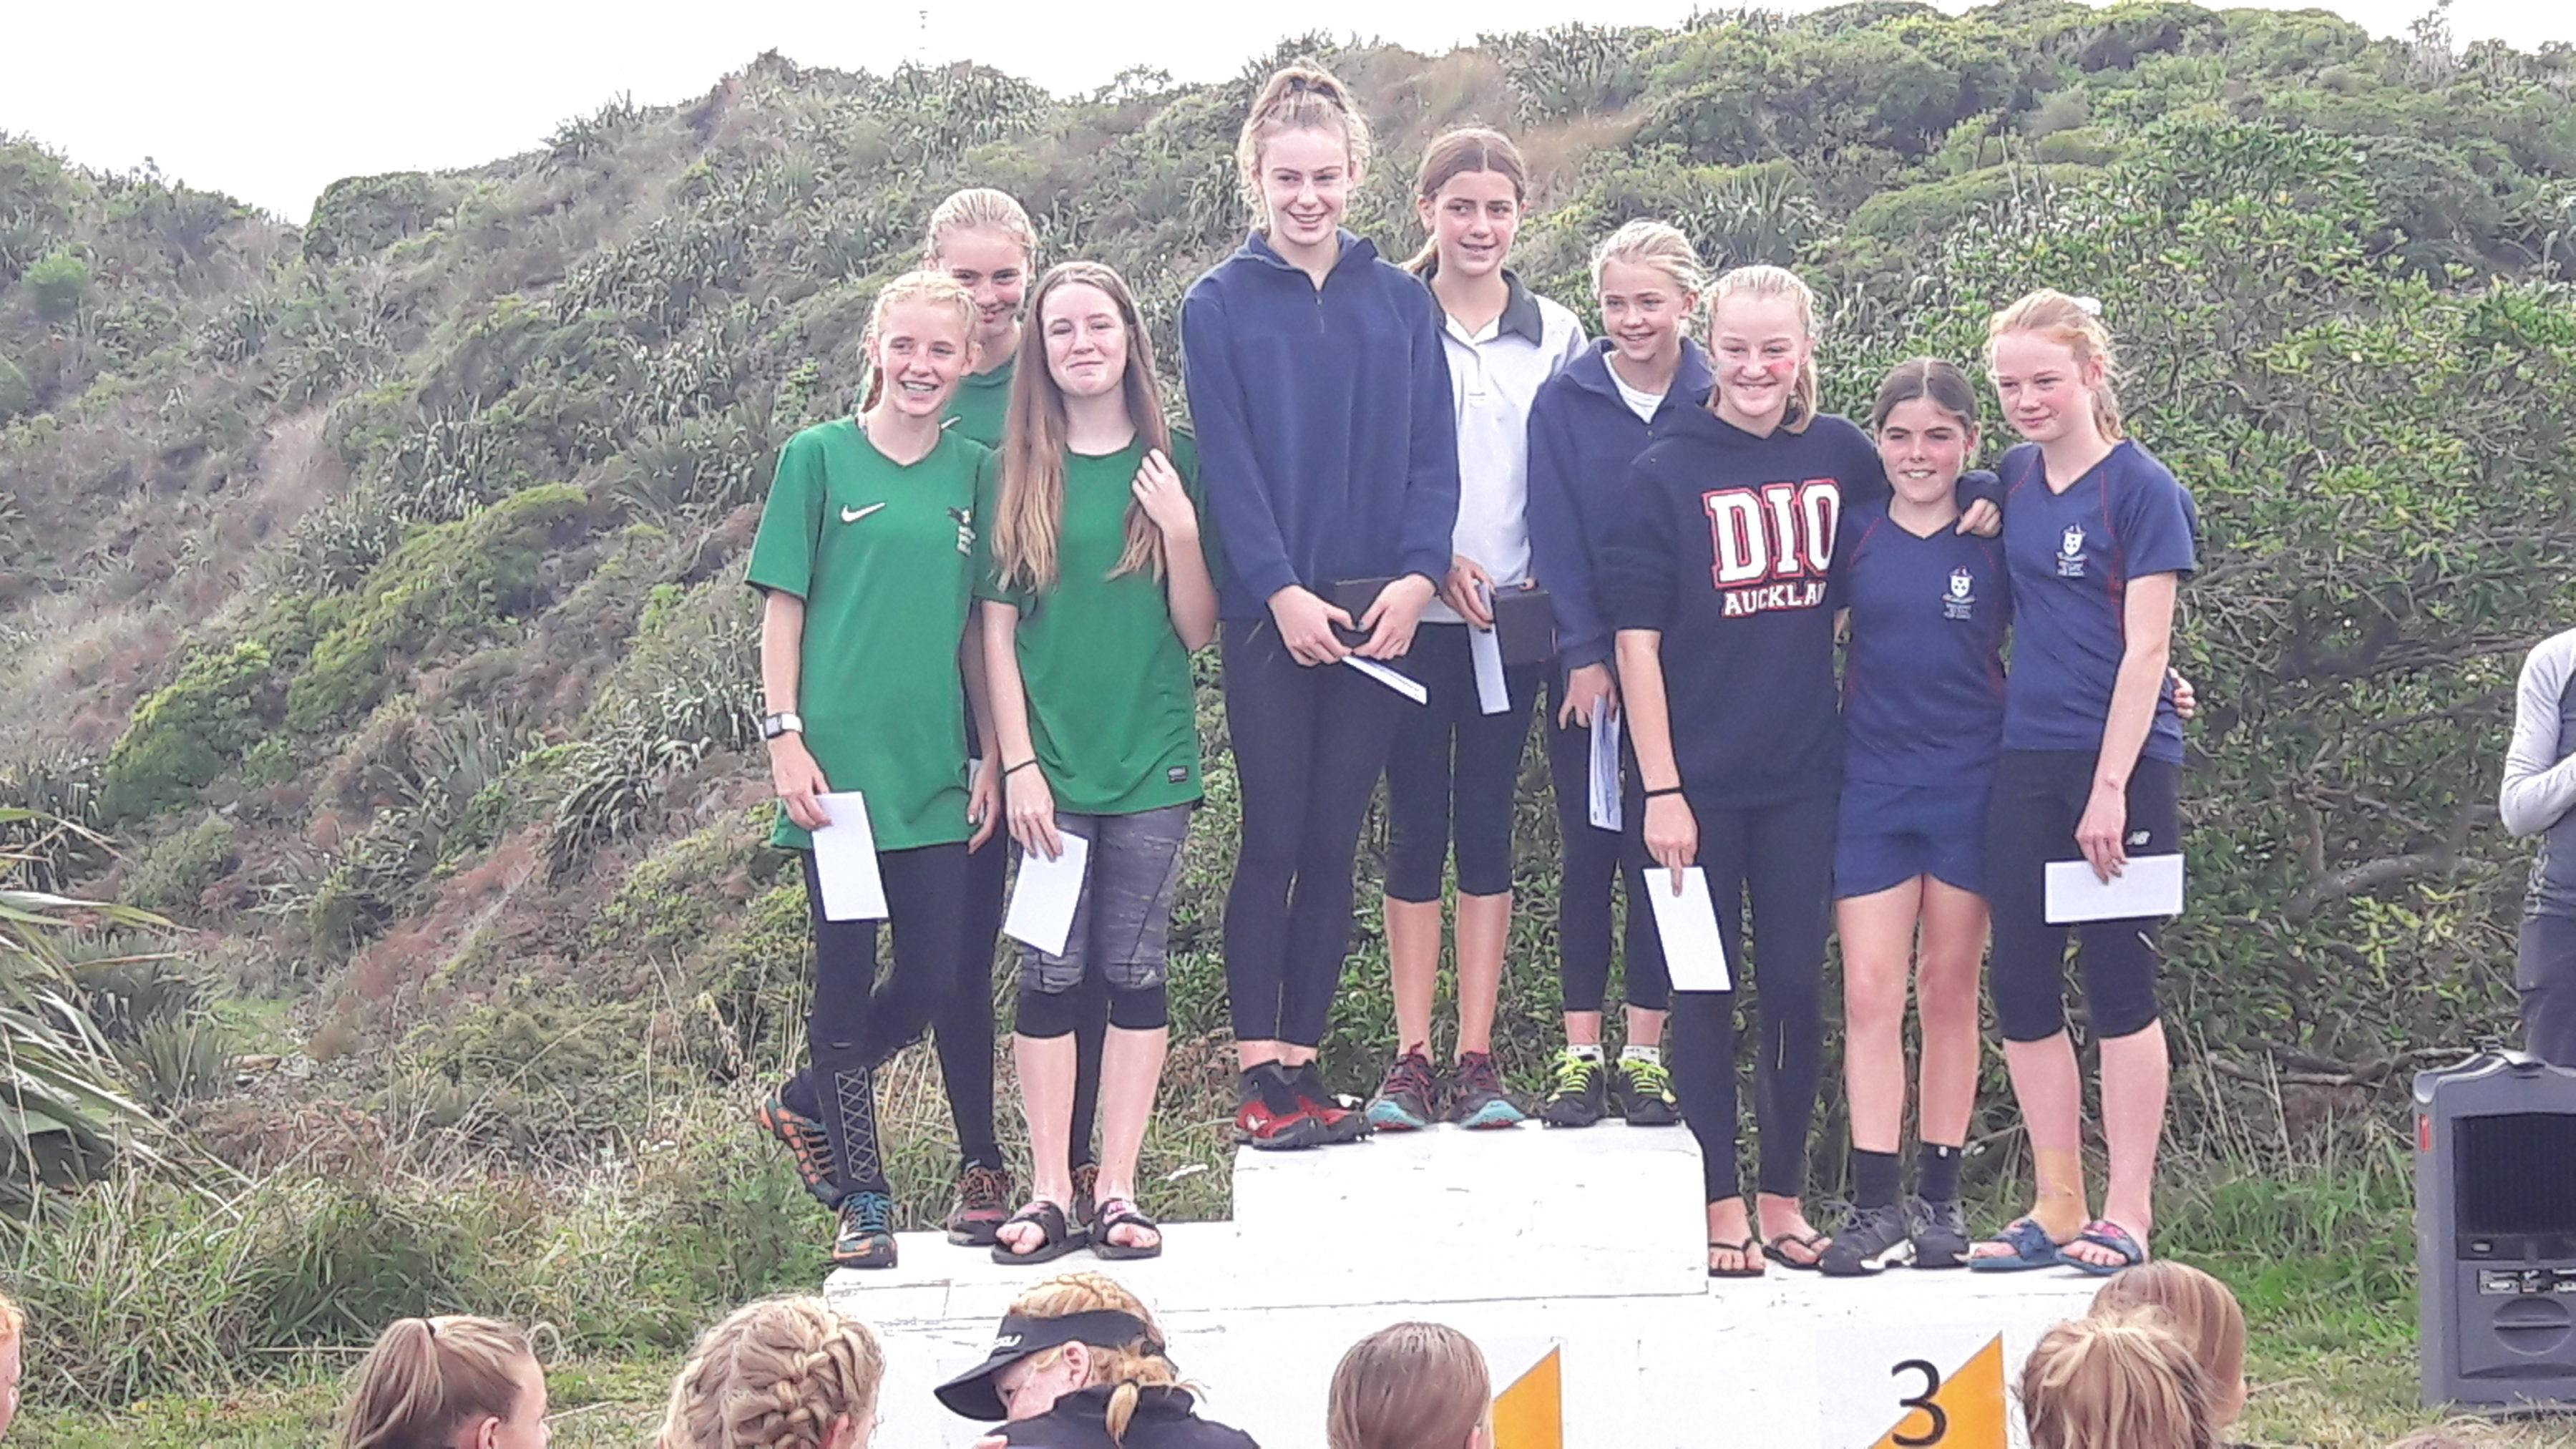 Auckland Relay Champs